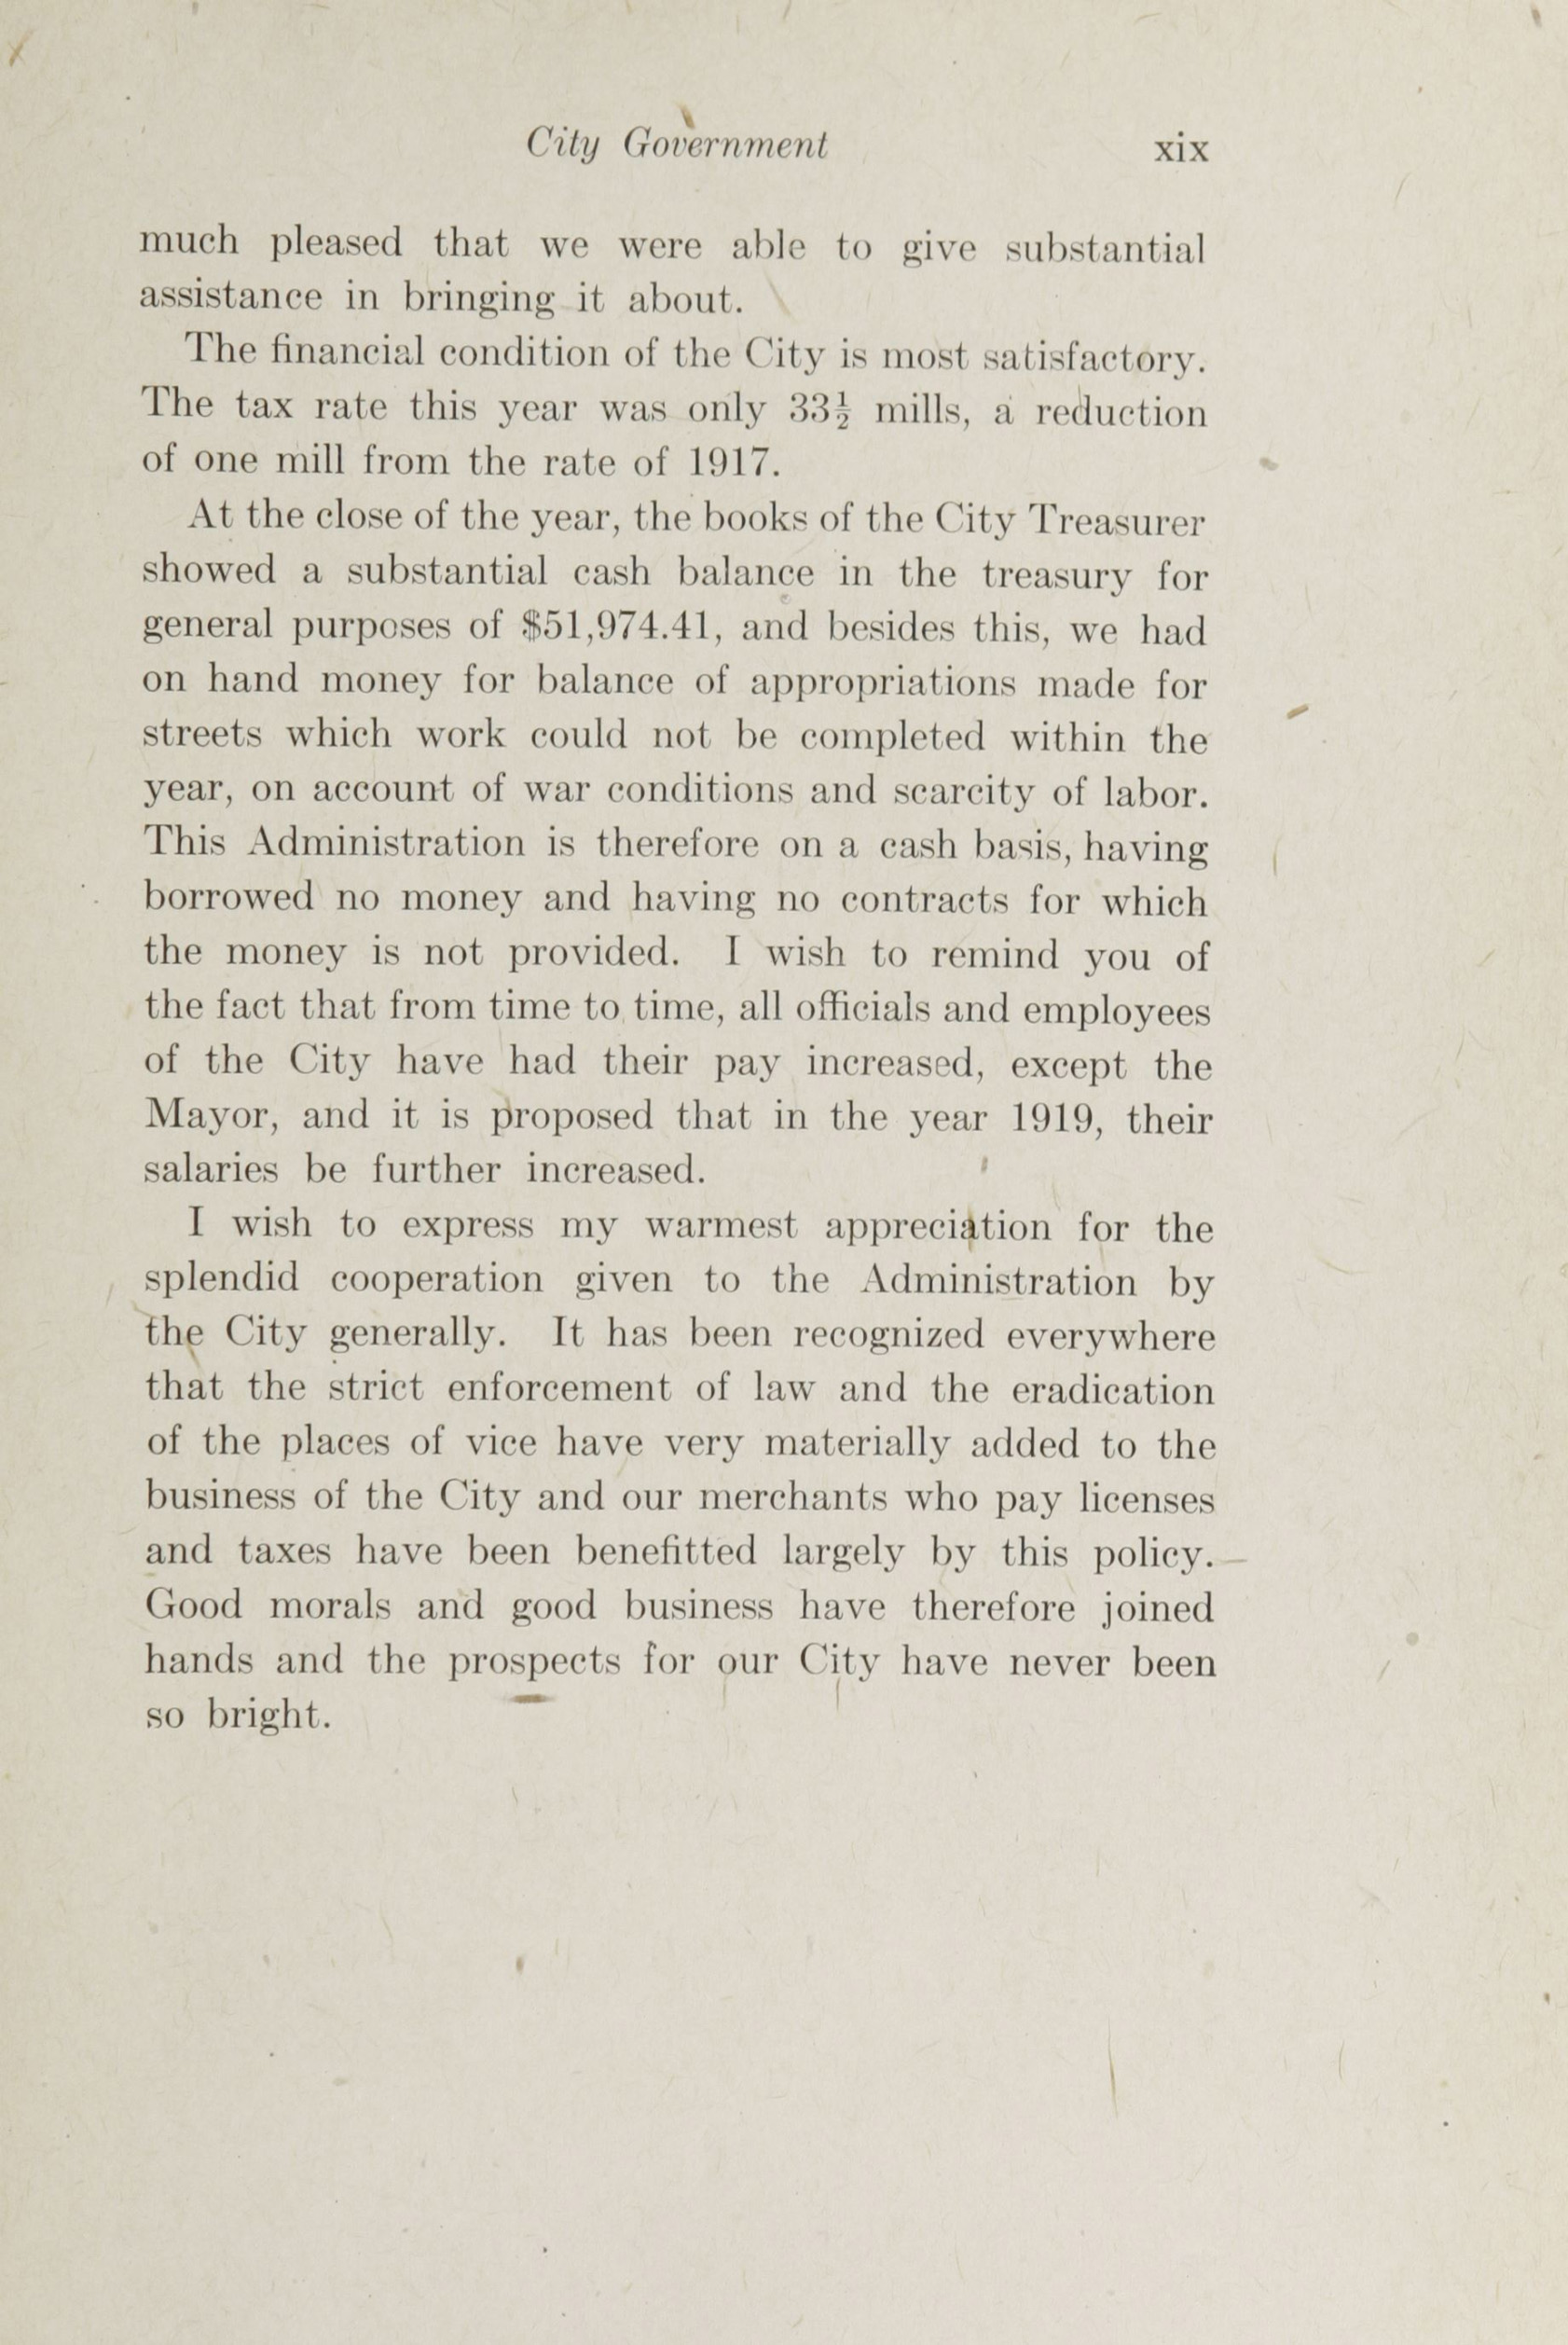 Charleston Yearbook, 1918, page xix